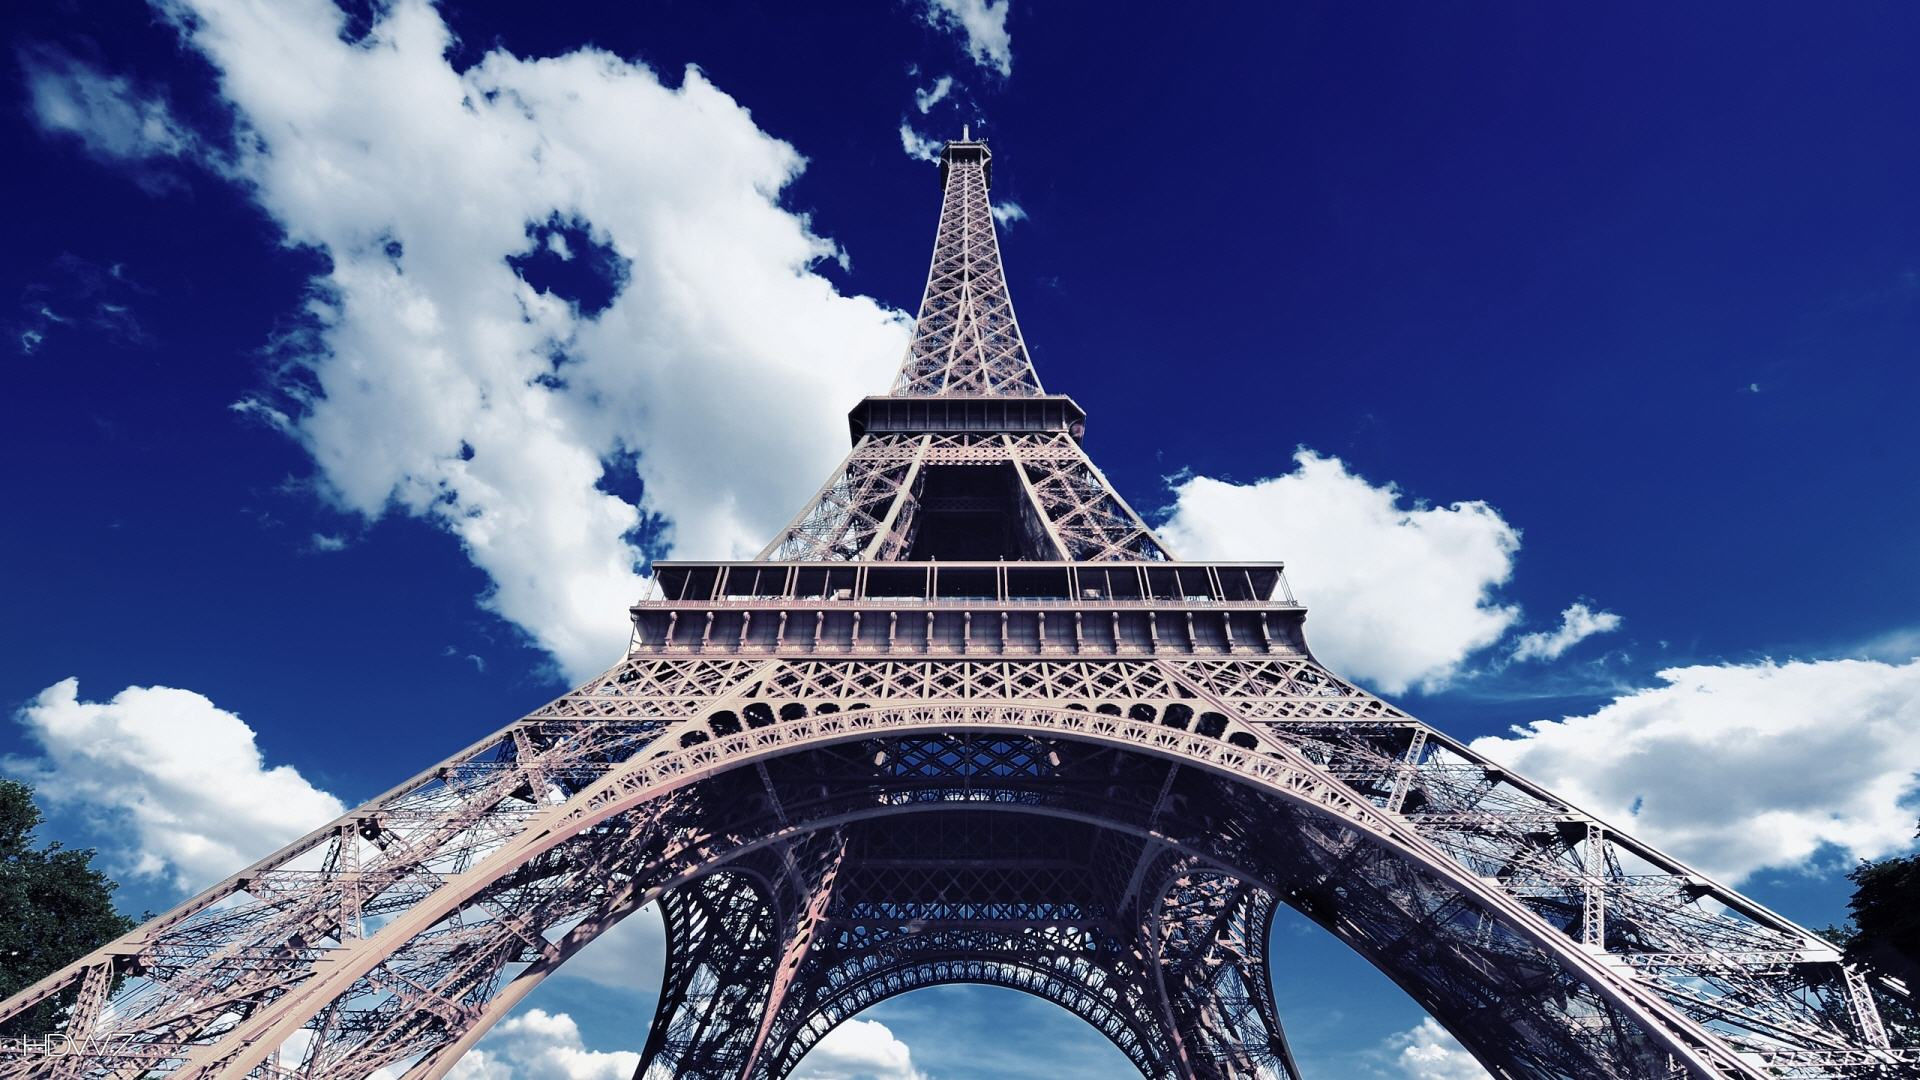 Paris Eiffel Tower Wallpaper Hd 1920x1080 Hd Wallpaper Gallery 369